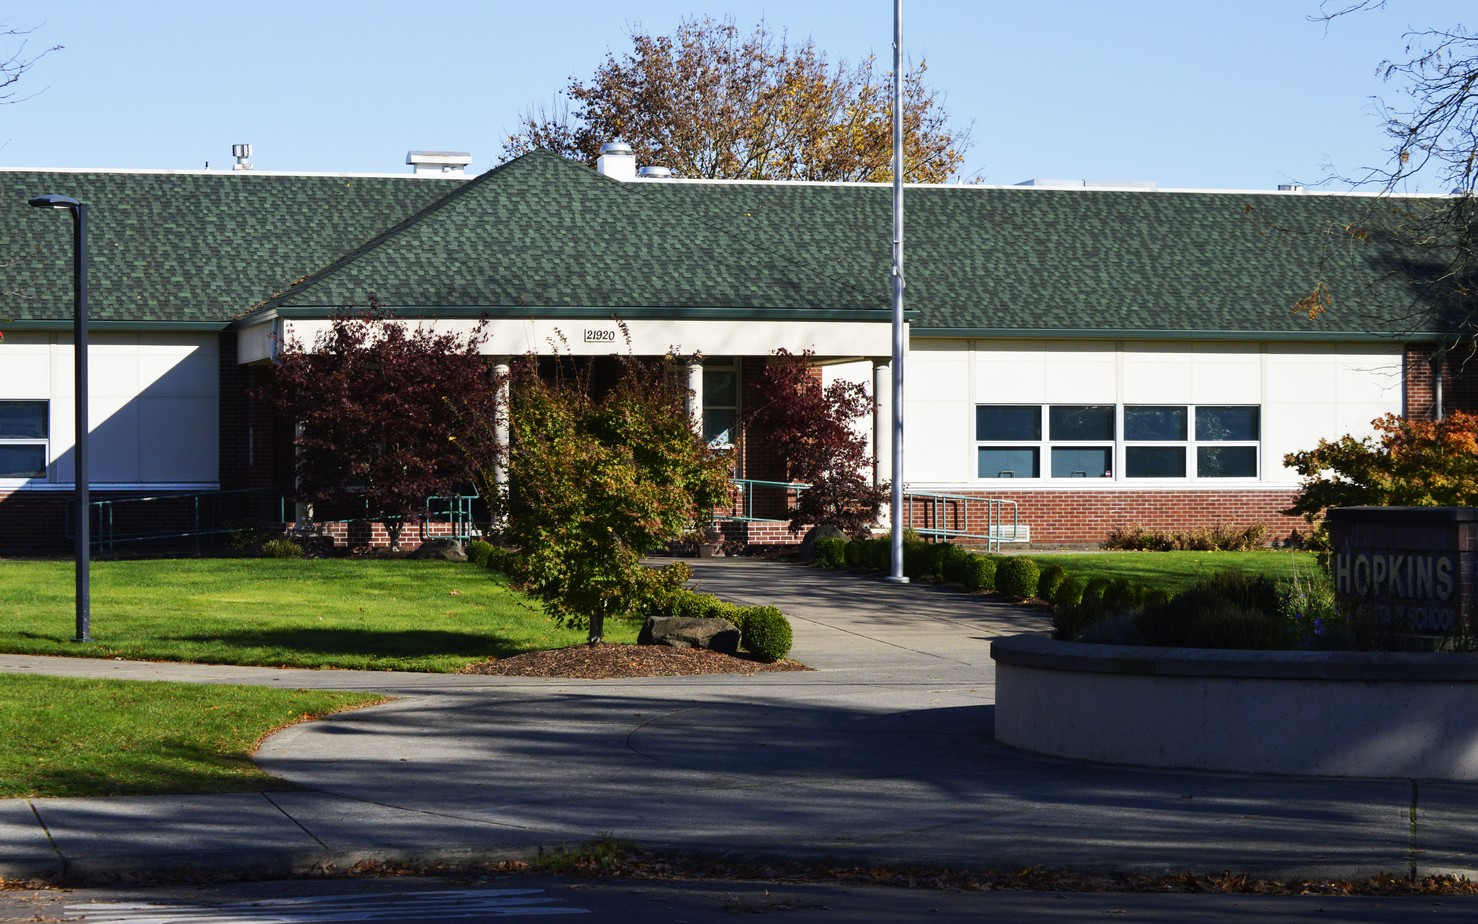 27-sherwood-oregon-hopkins-elementary-school-the-kelly-group-real-estate